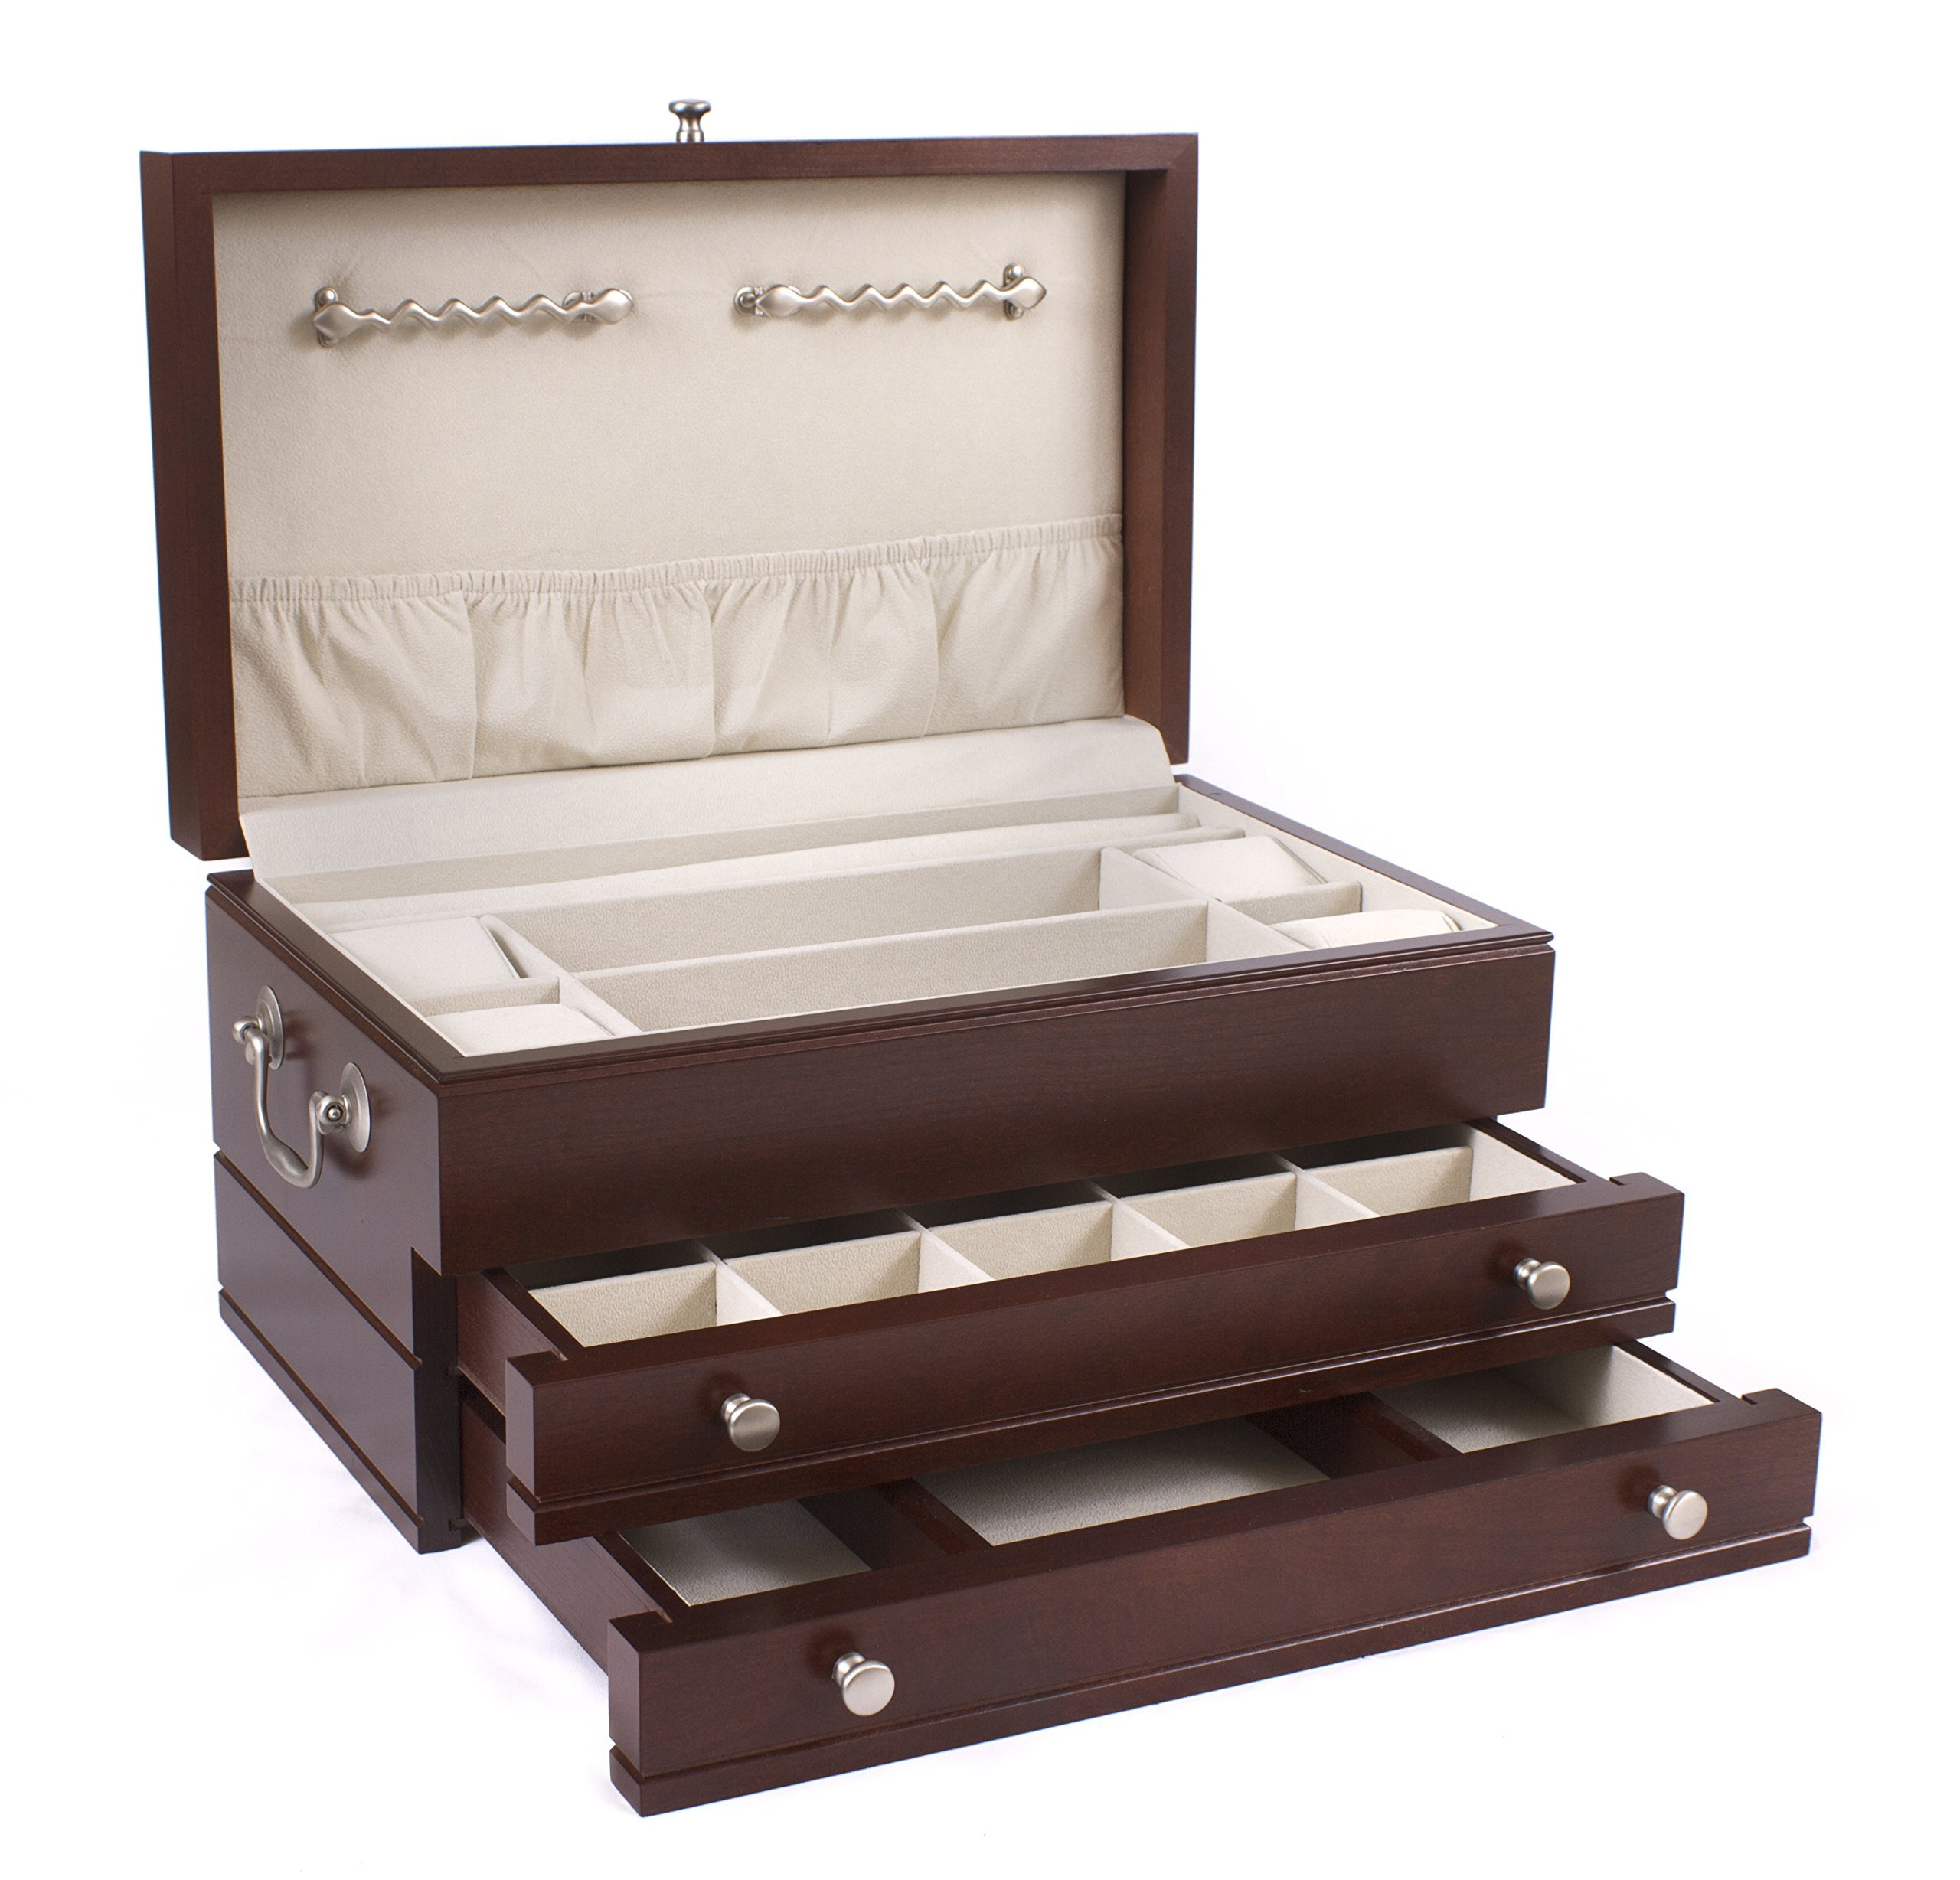 American Chest First Lady, 2-Drawer, Solid Cherry Jewelry Box; MADE in USA by American Chest (Image #1)